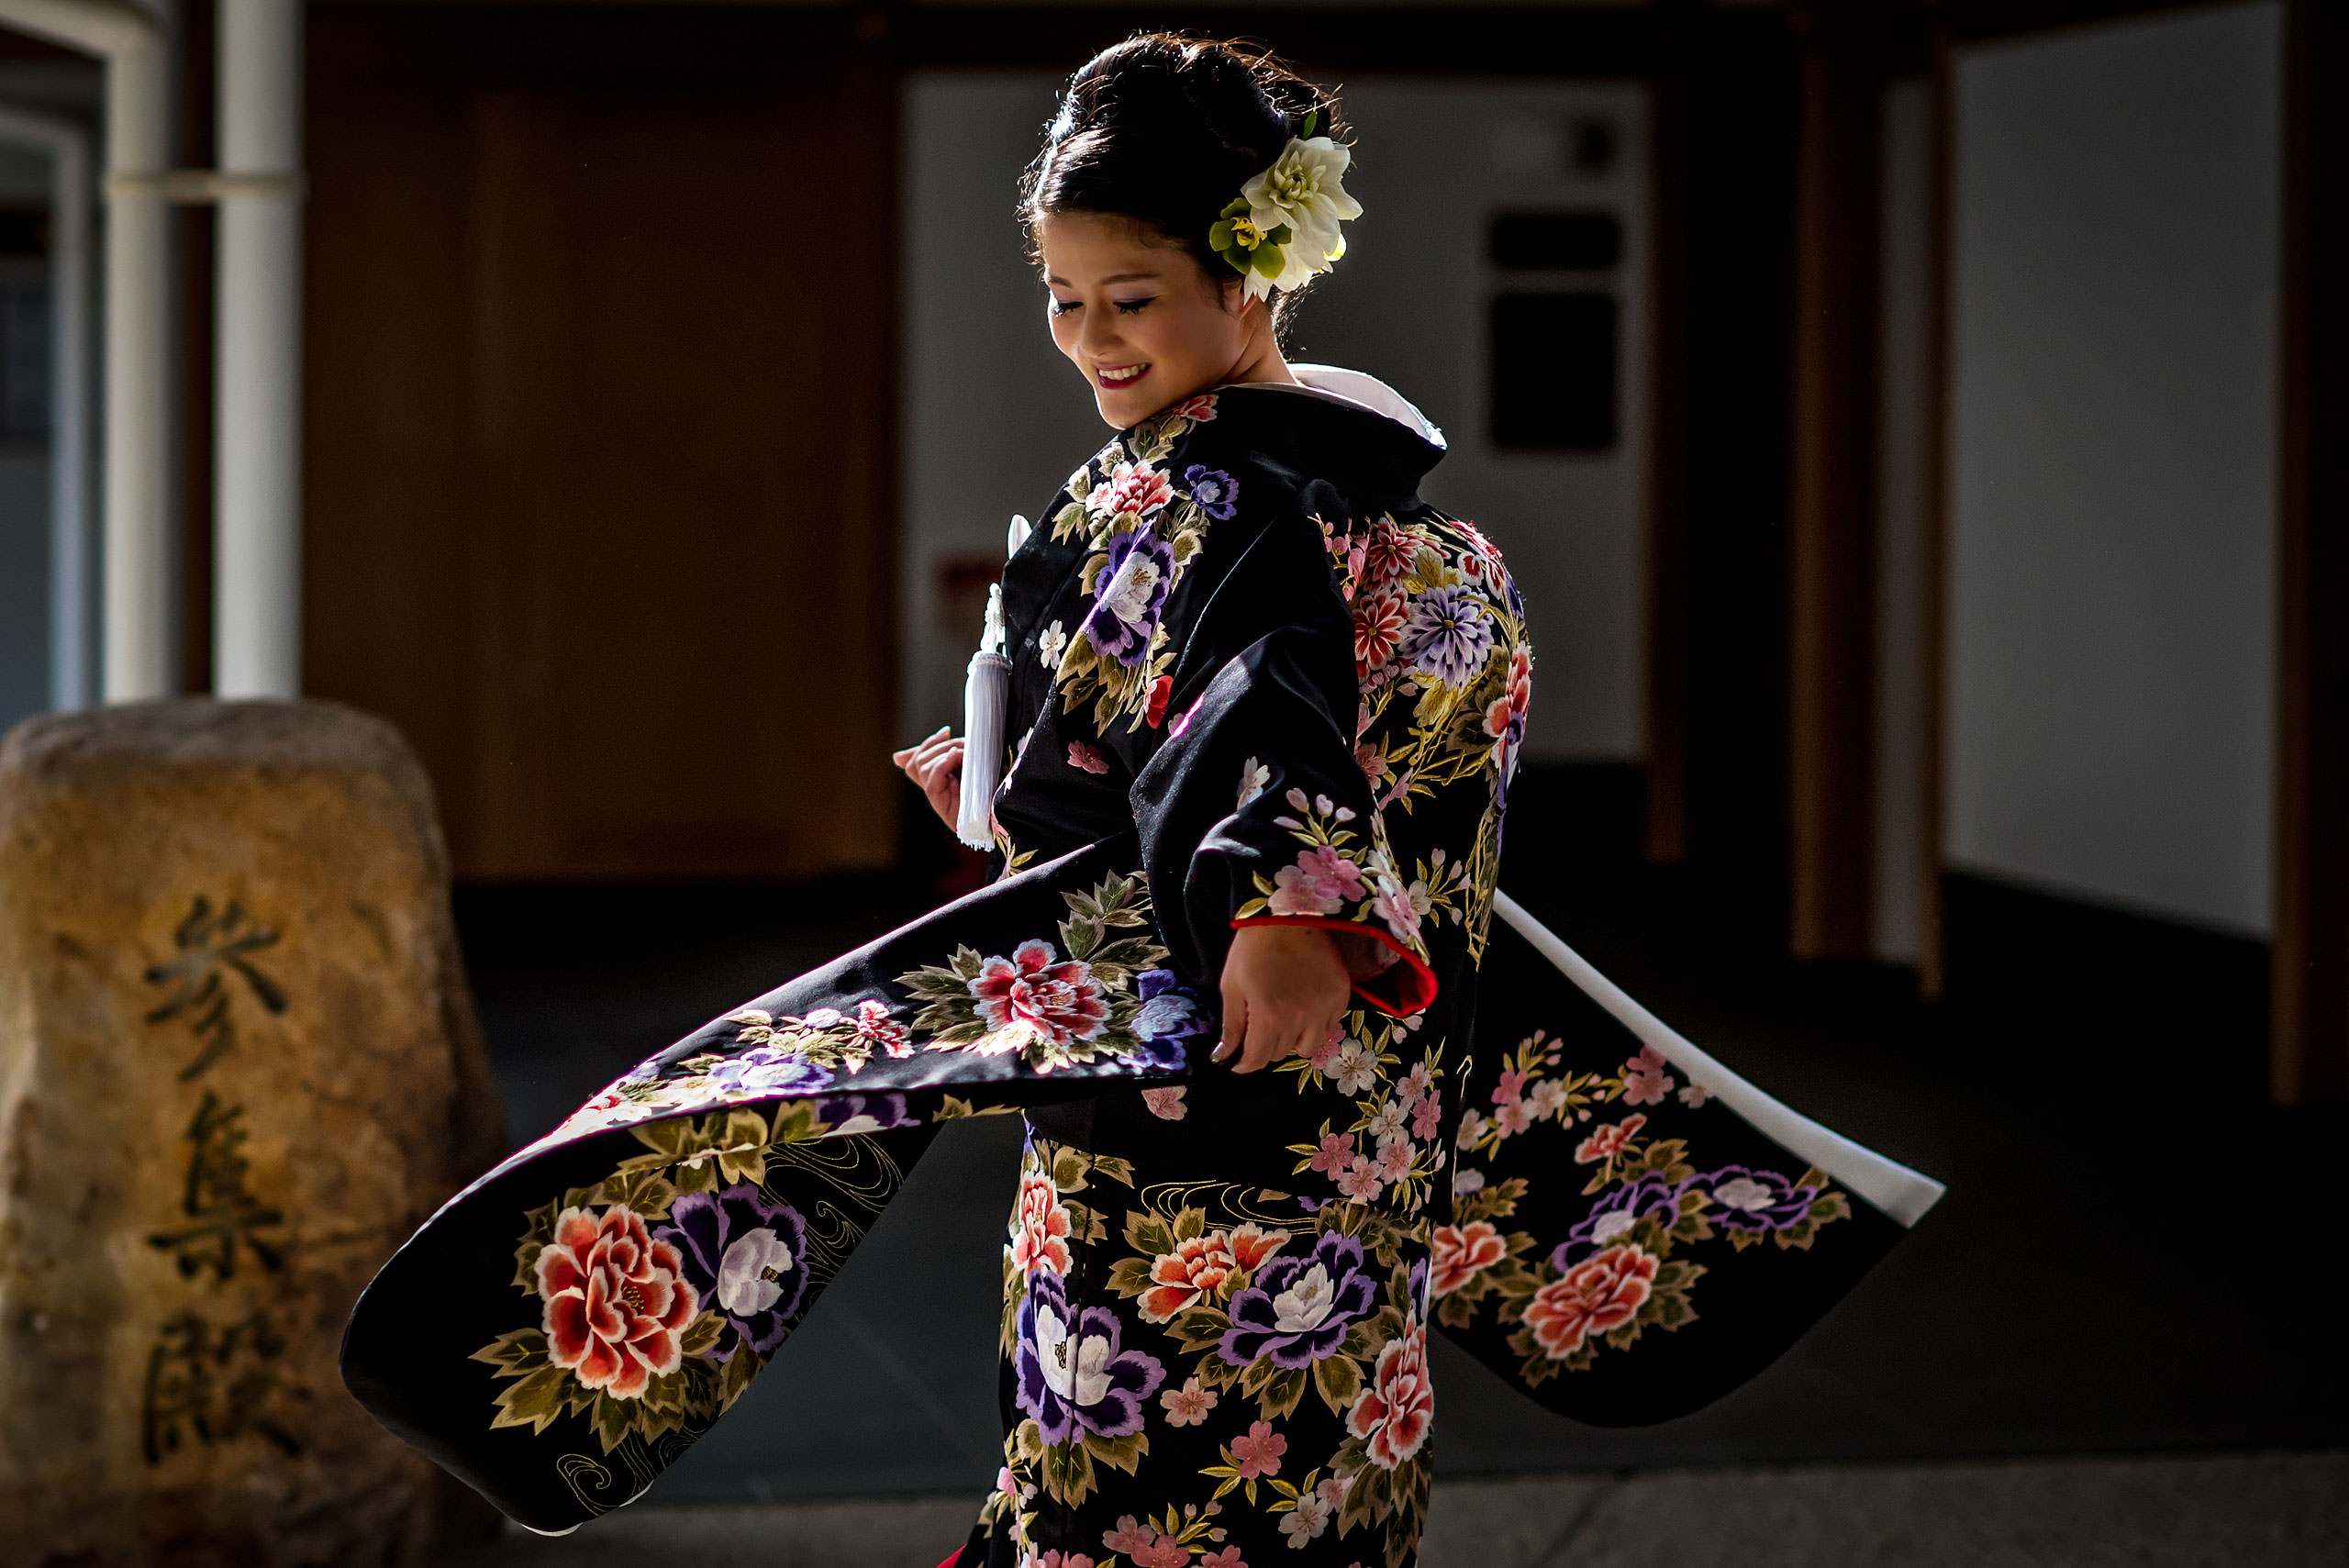 Japanese bride spinning in kimono by Japan Destination Wedding Photographer Sean LeBlanc